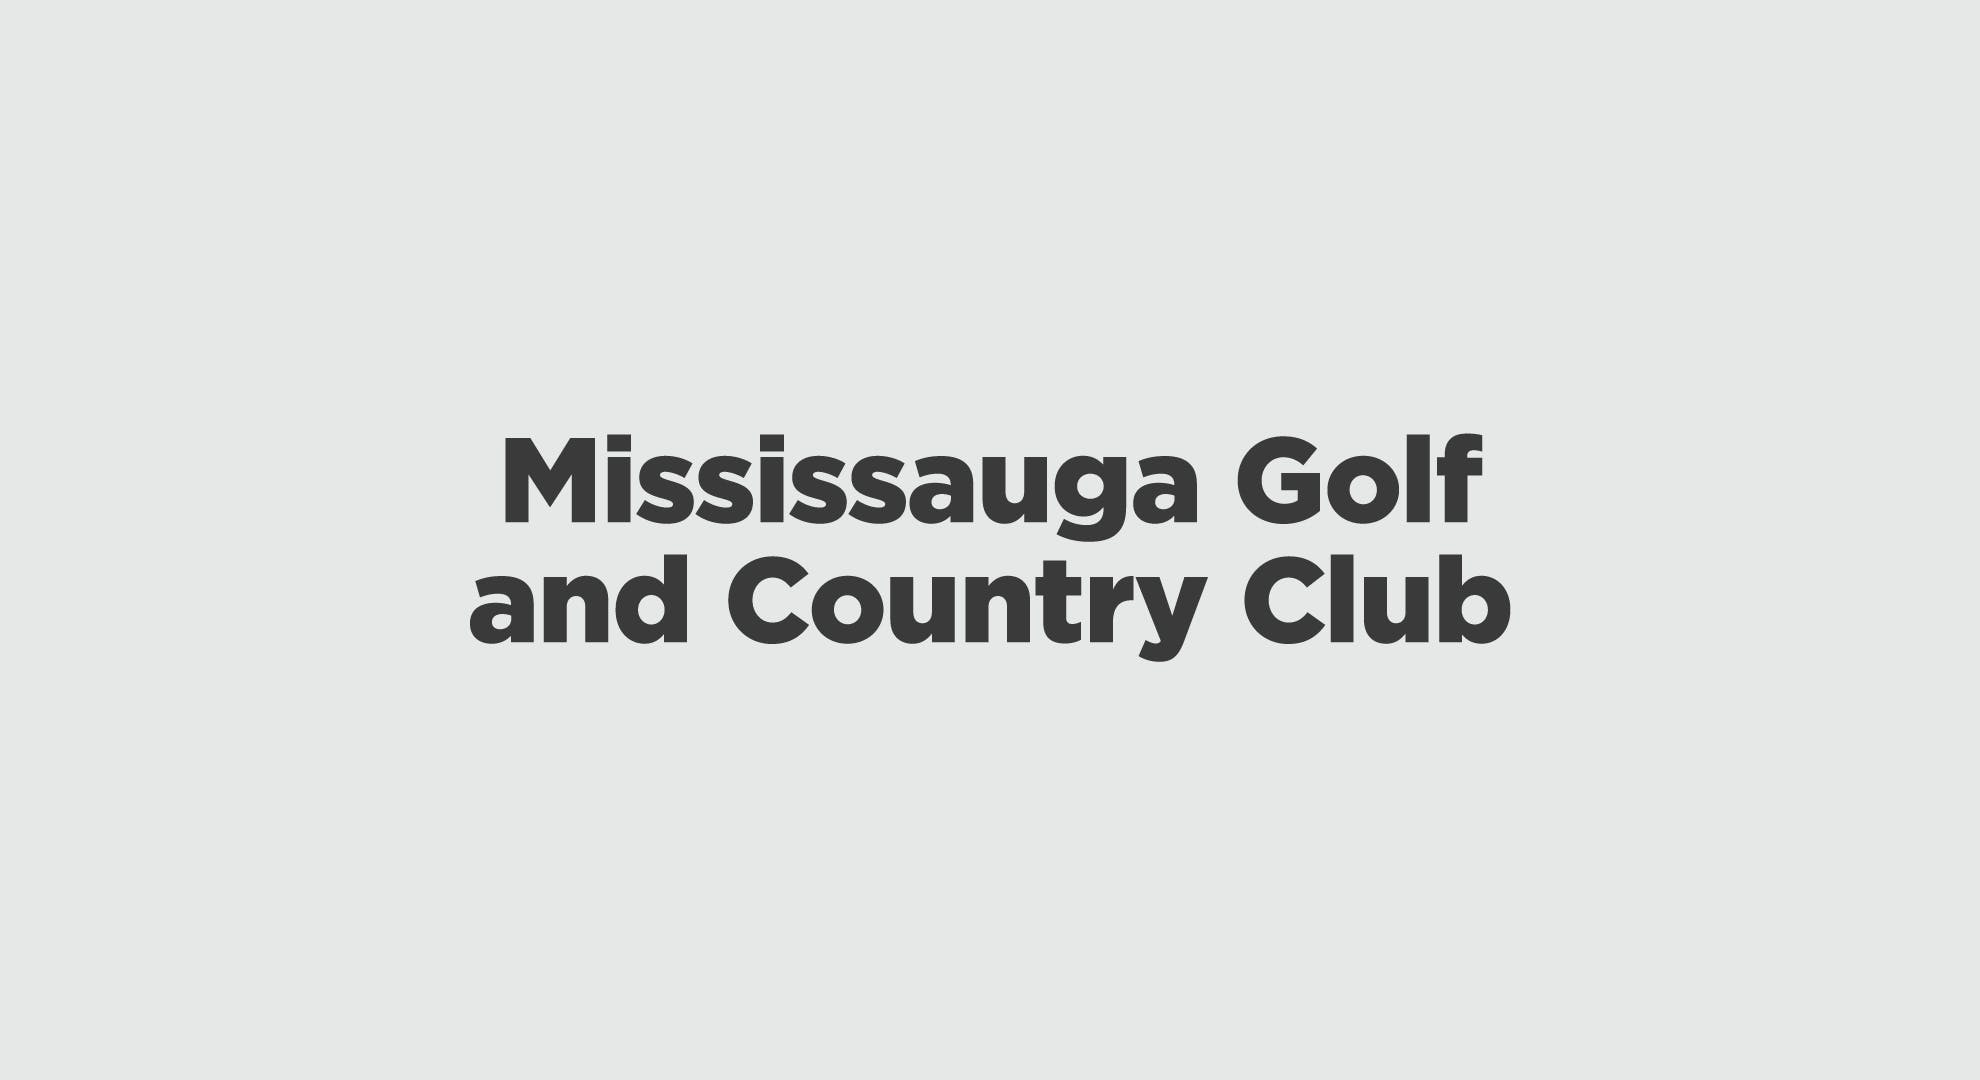 Mississauga Golf And Country Club Graphic